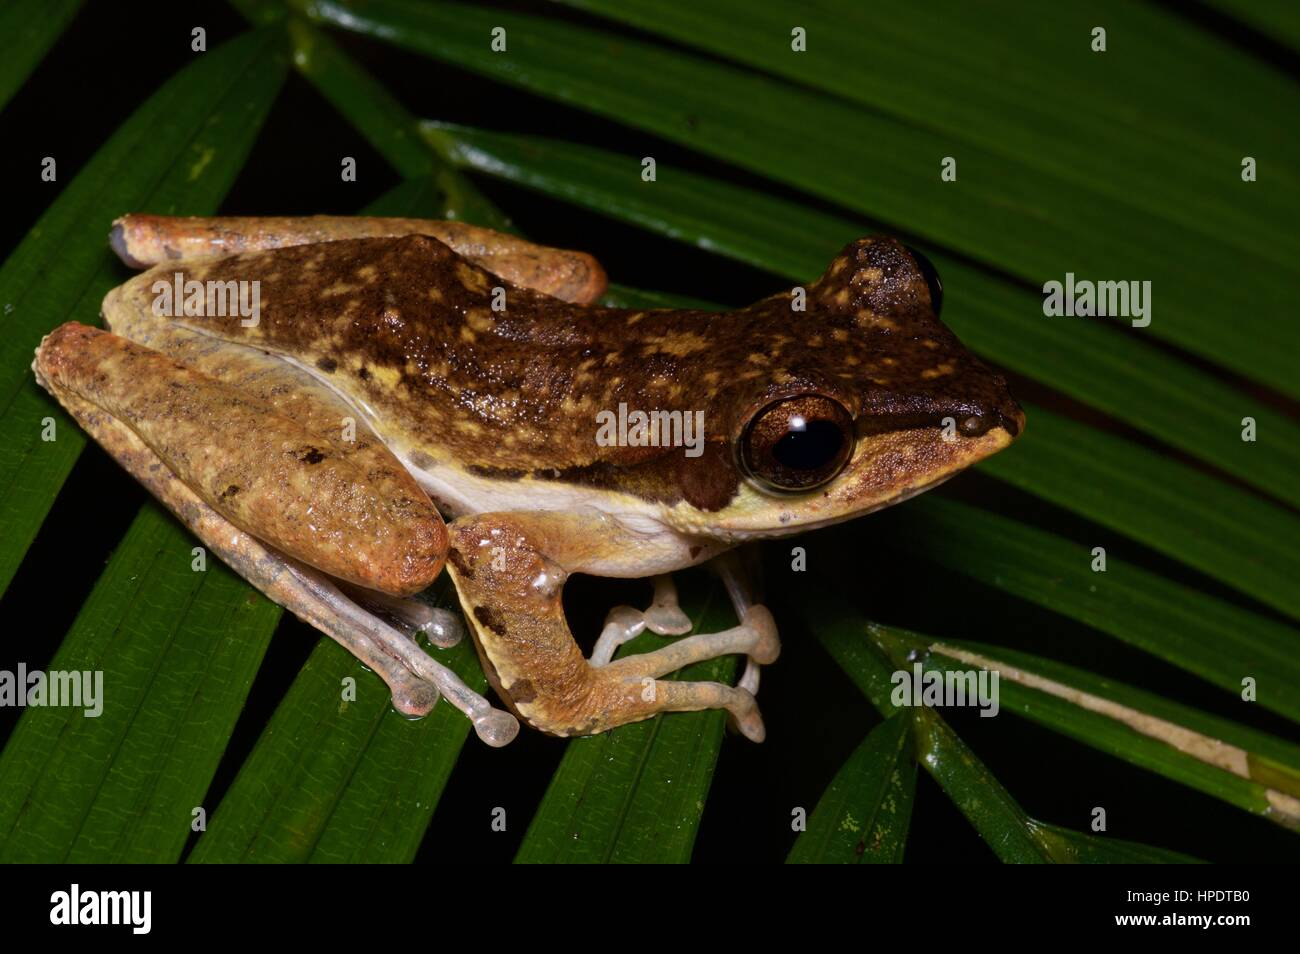 A Dark-eared Tree Frog (Polypedates macrotis) in the rainforest at night in Kubah National Park, Sarawak, East Malaysia, - Stock Image